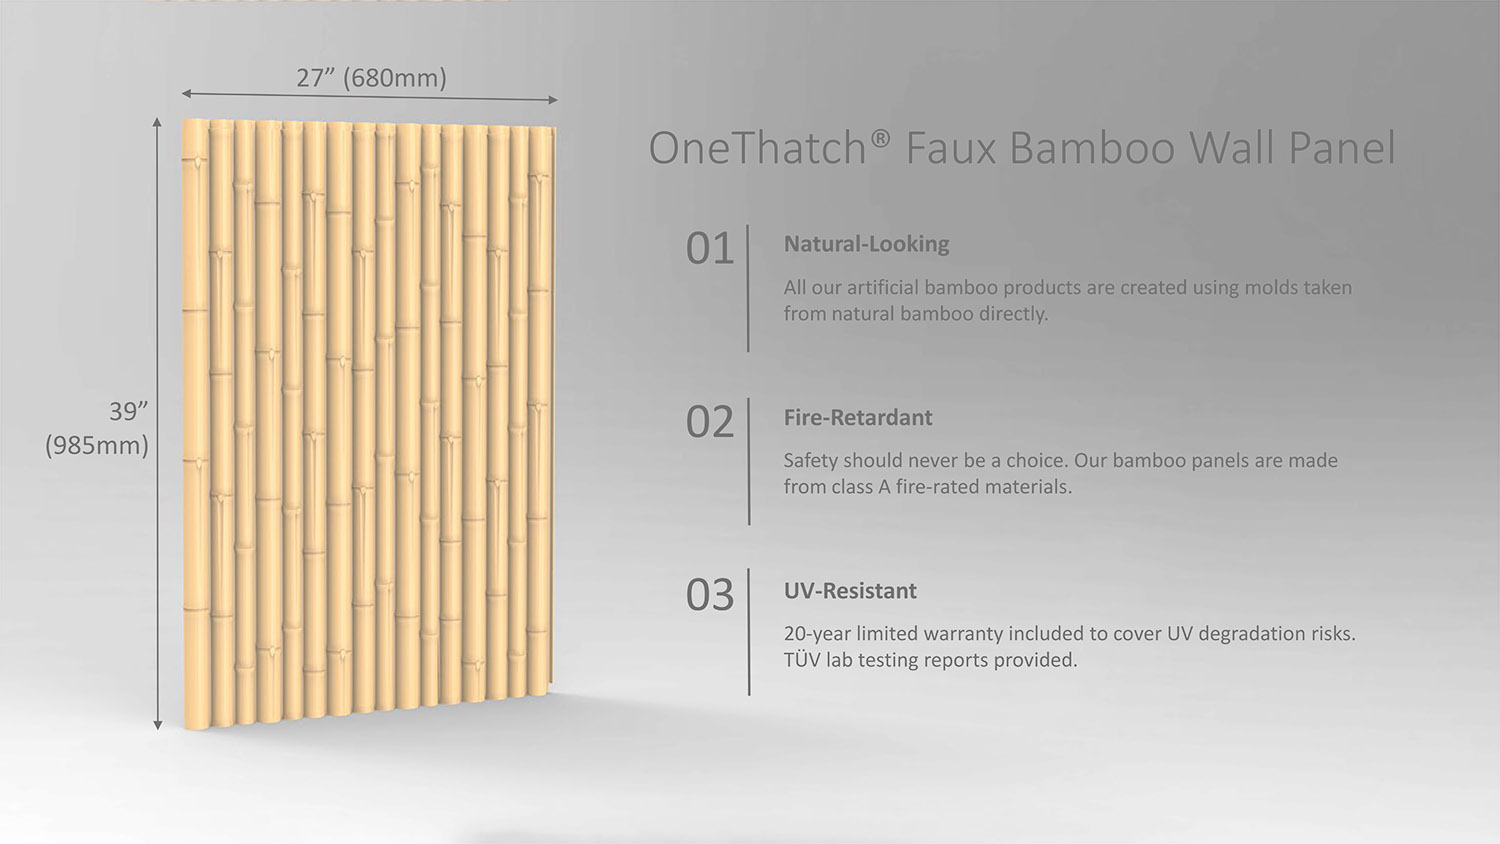 Faux Bamboo Panel Spec